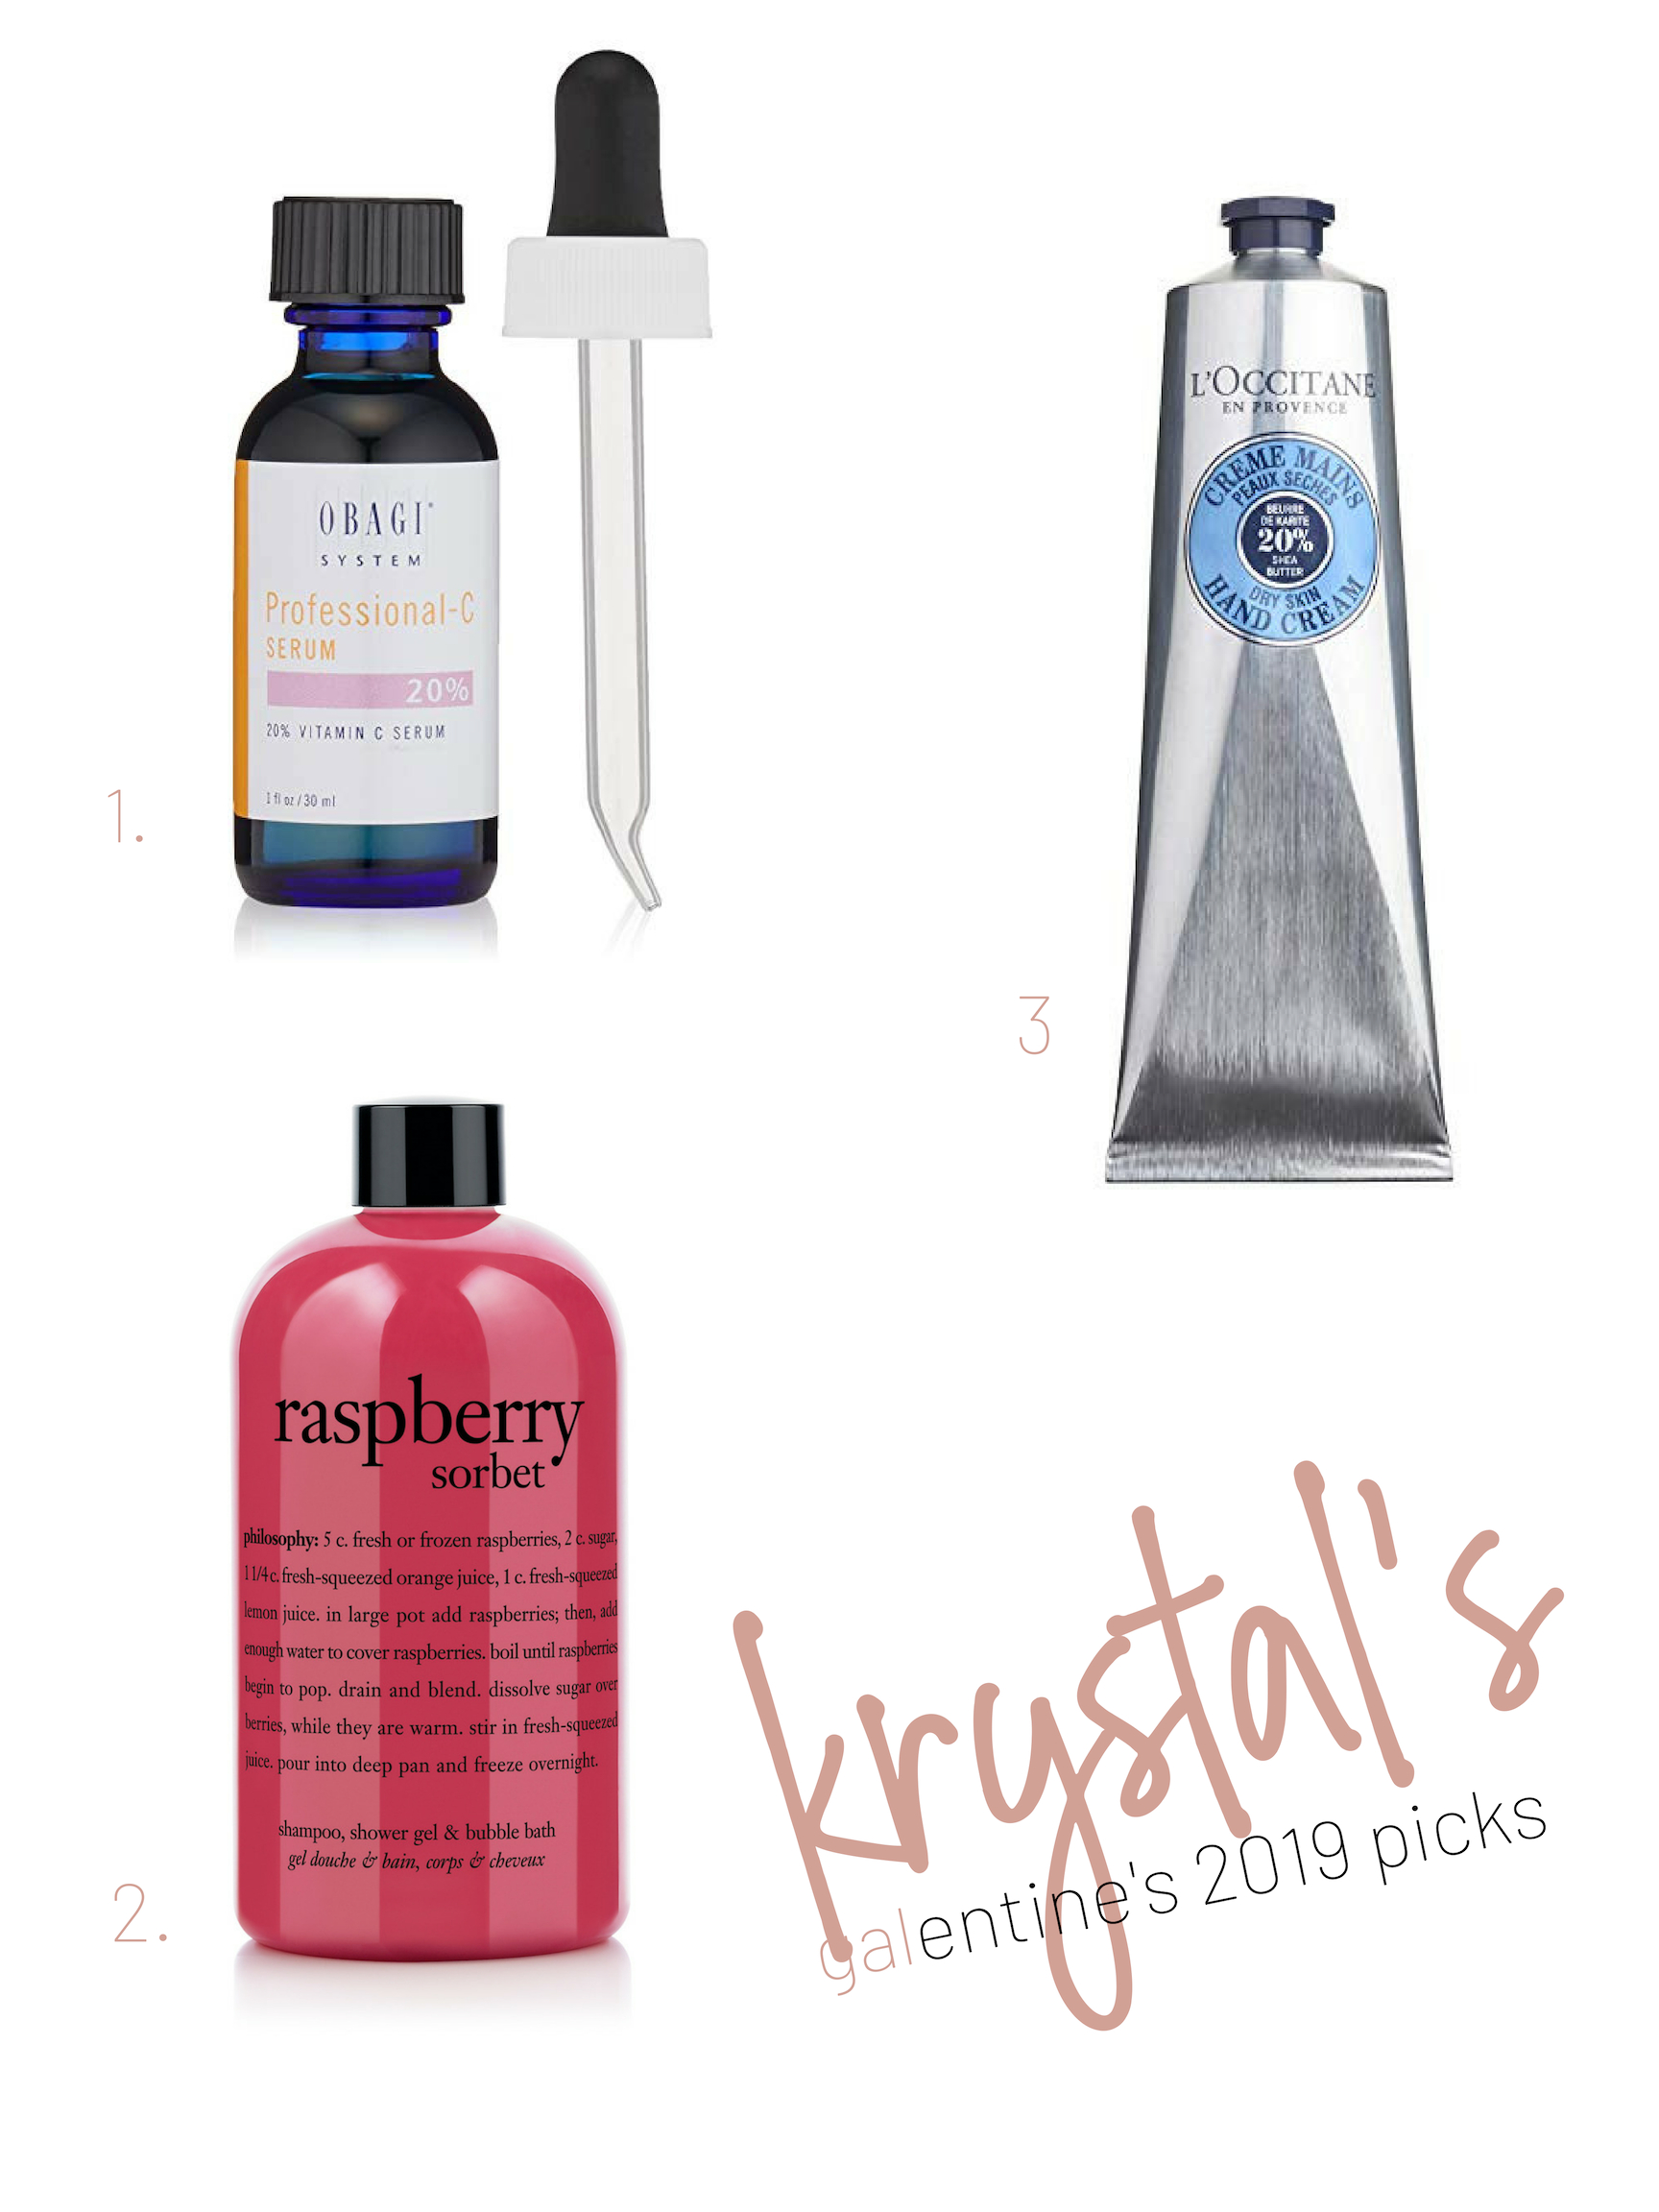 1.  OBAGI VITAMIN C SERUM  2.  PHILOSOPHY RASPBERRY SORBET  3.  L'OCCITANE HAND CREAM